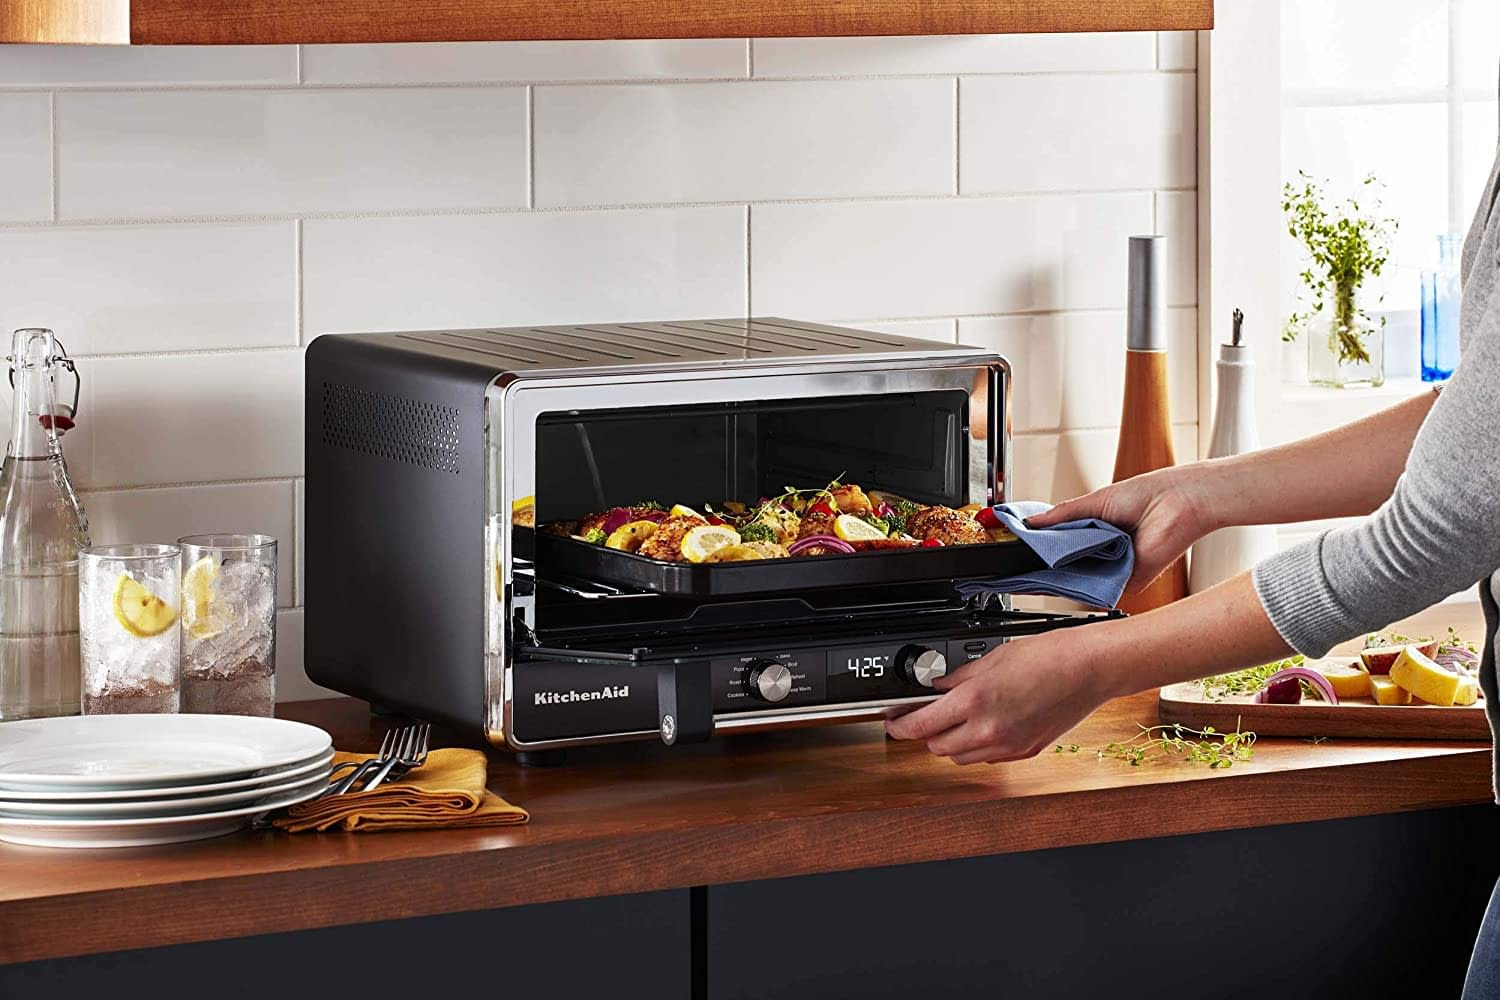 KitchenAid Toaster Oven Review 1